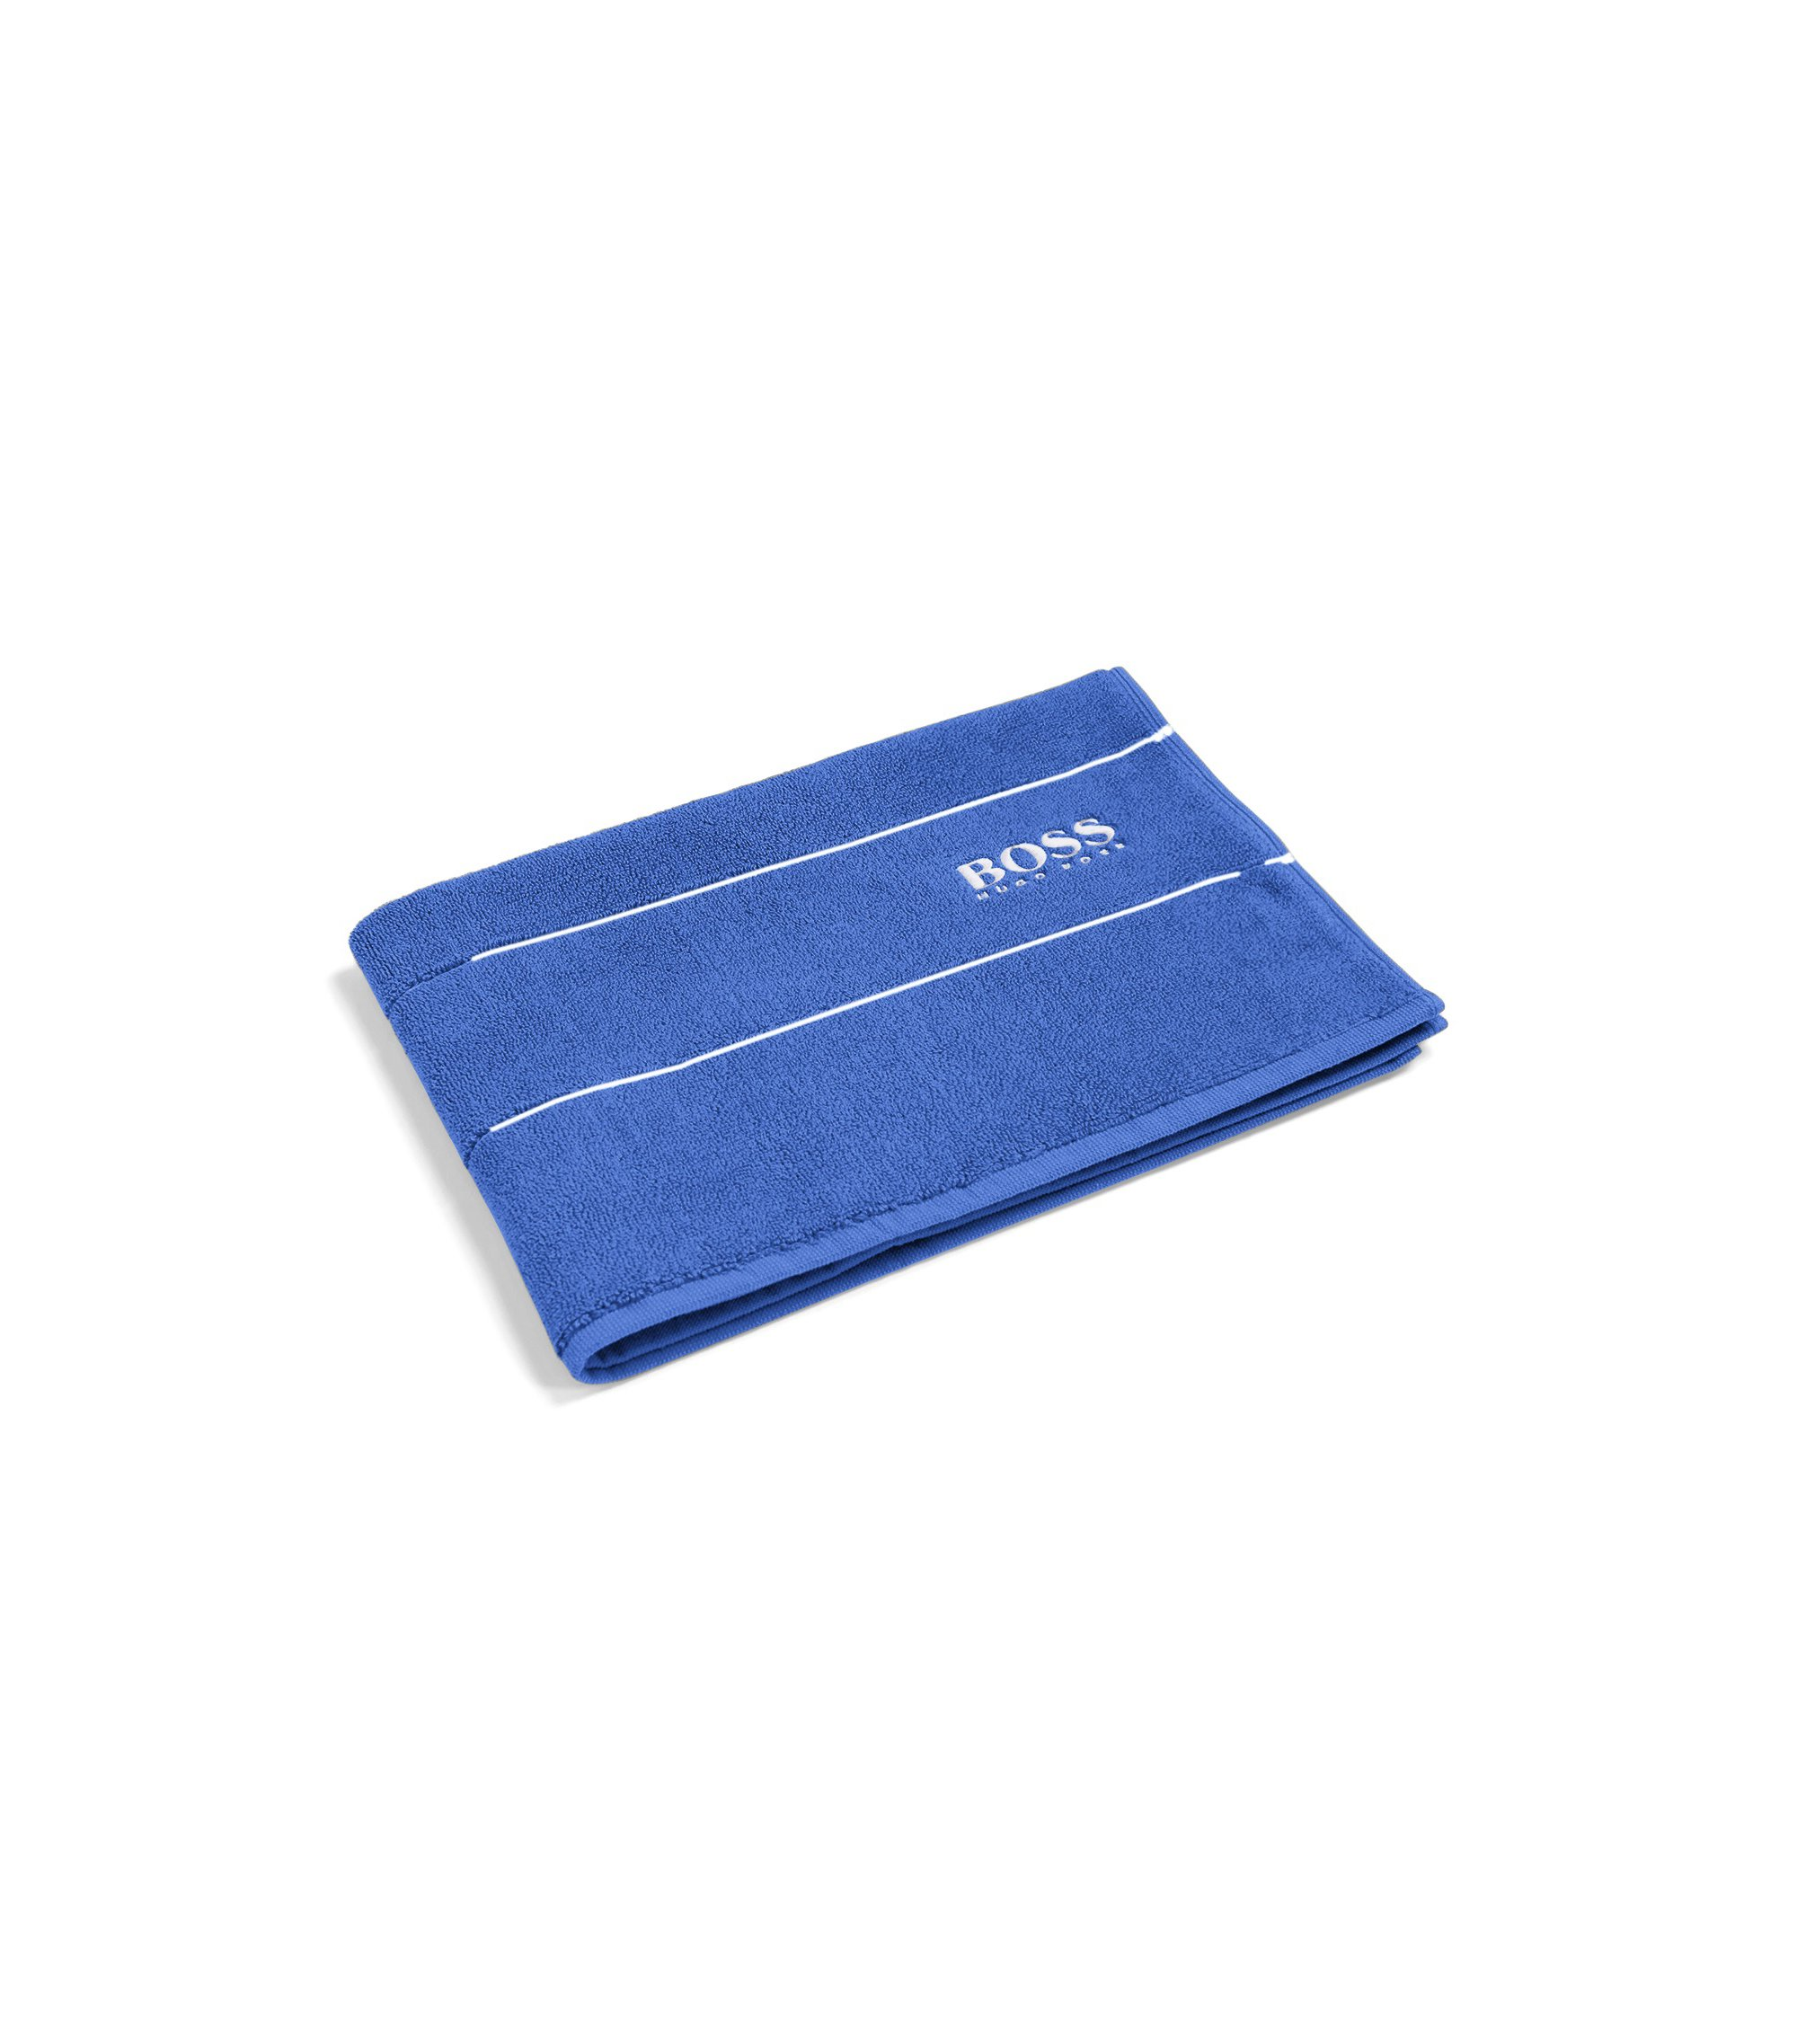 Finest Egyptian cotton bath mat with logo border, Blue